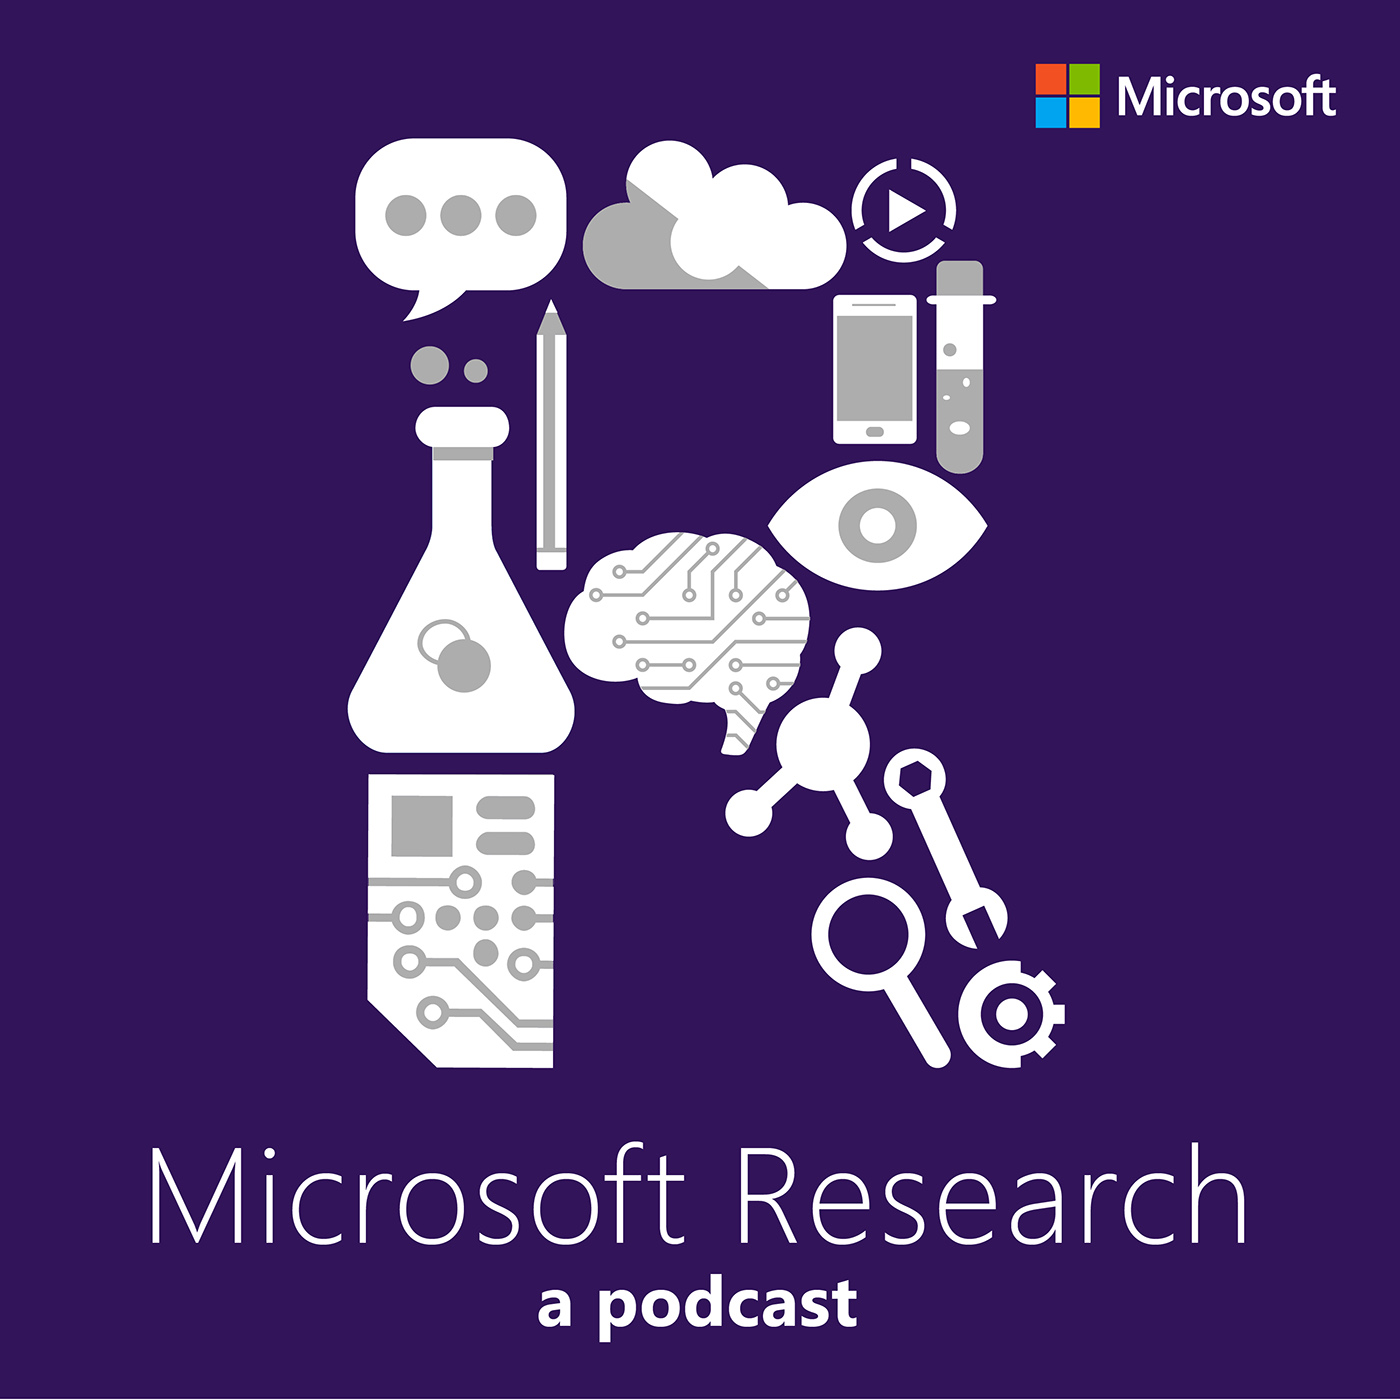 Microsoft Research - a podcast